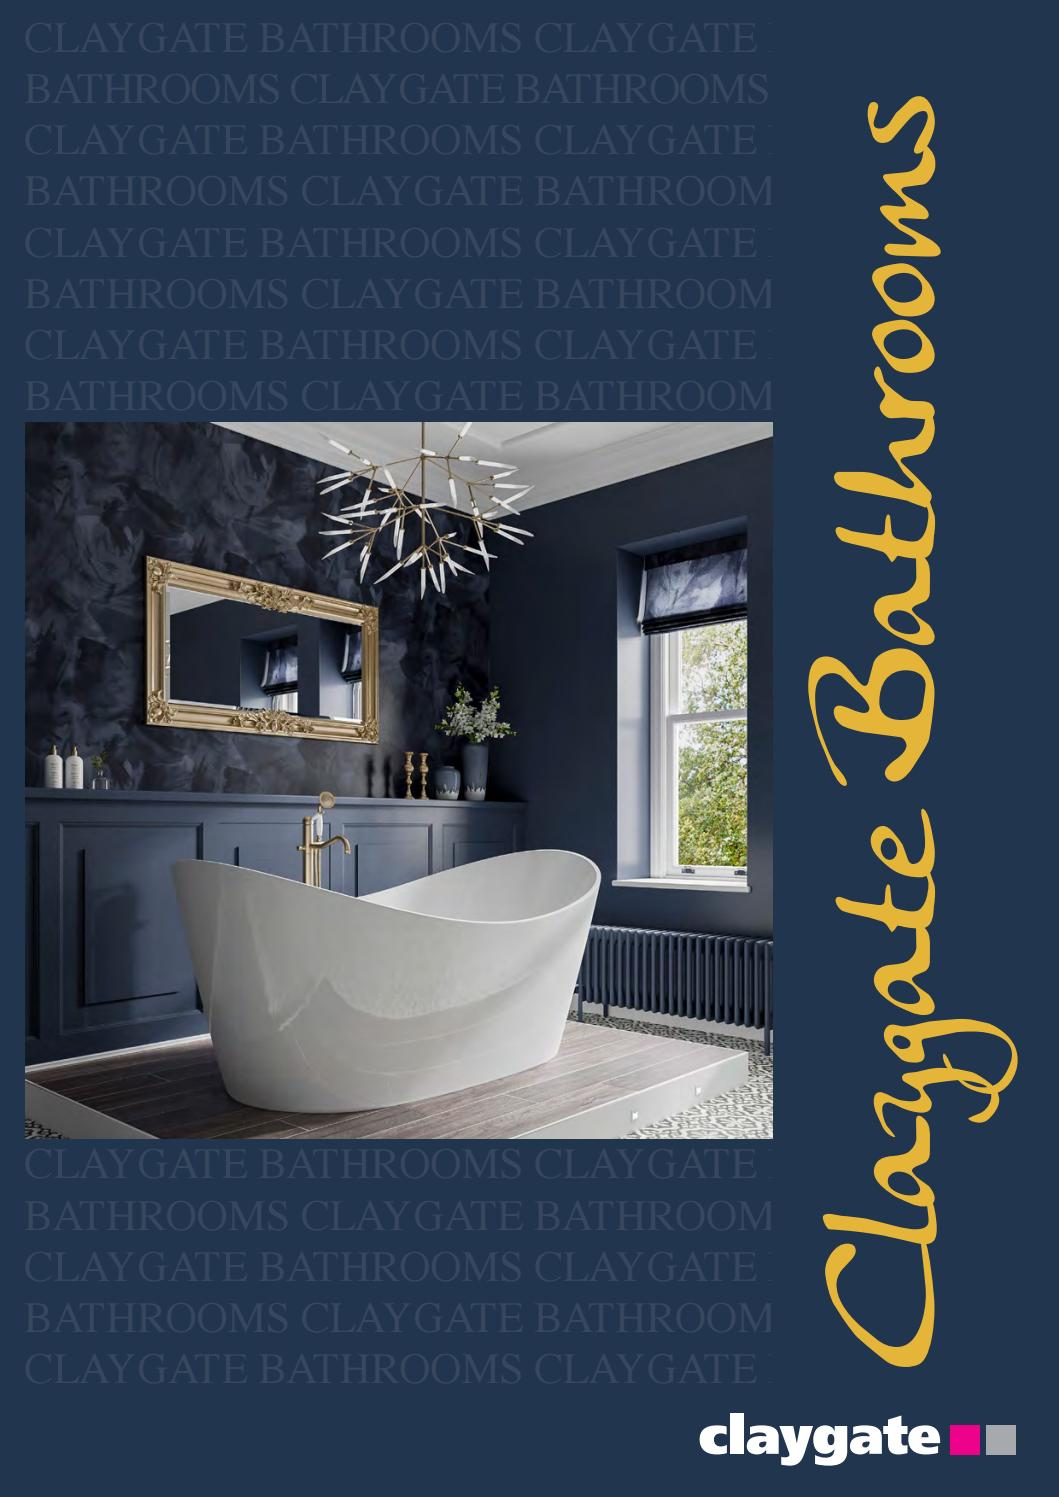 Claygate - Price Book - Issue 28 by Merlin Bathrooms - issuu